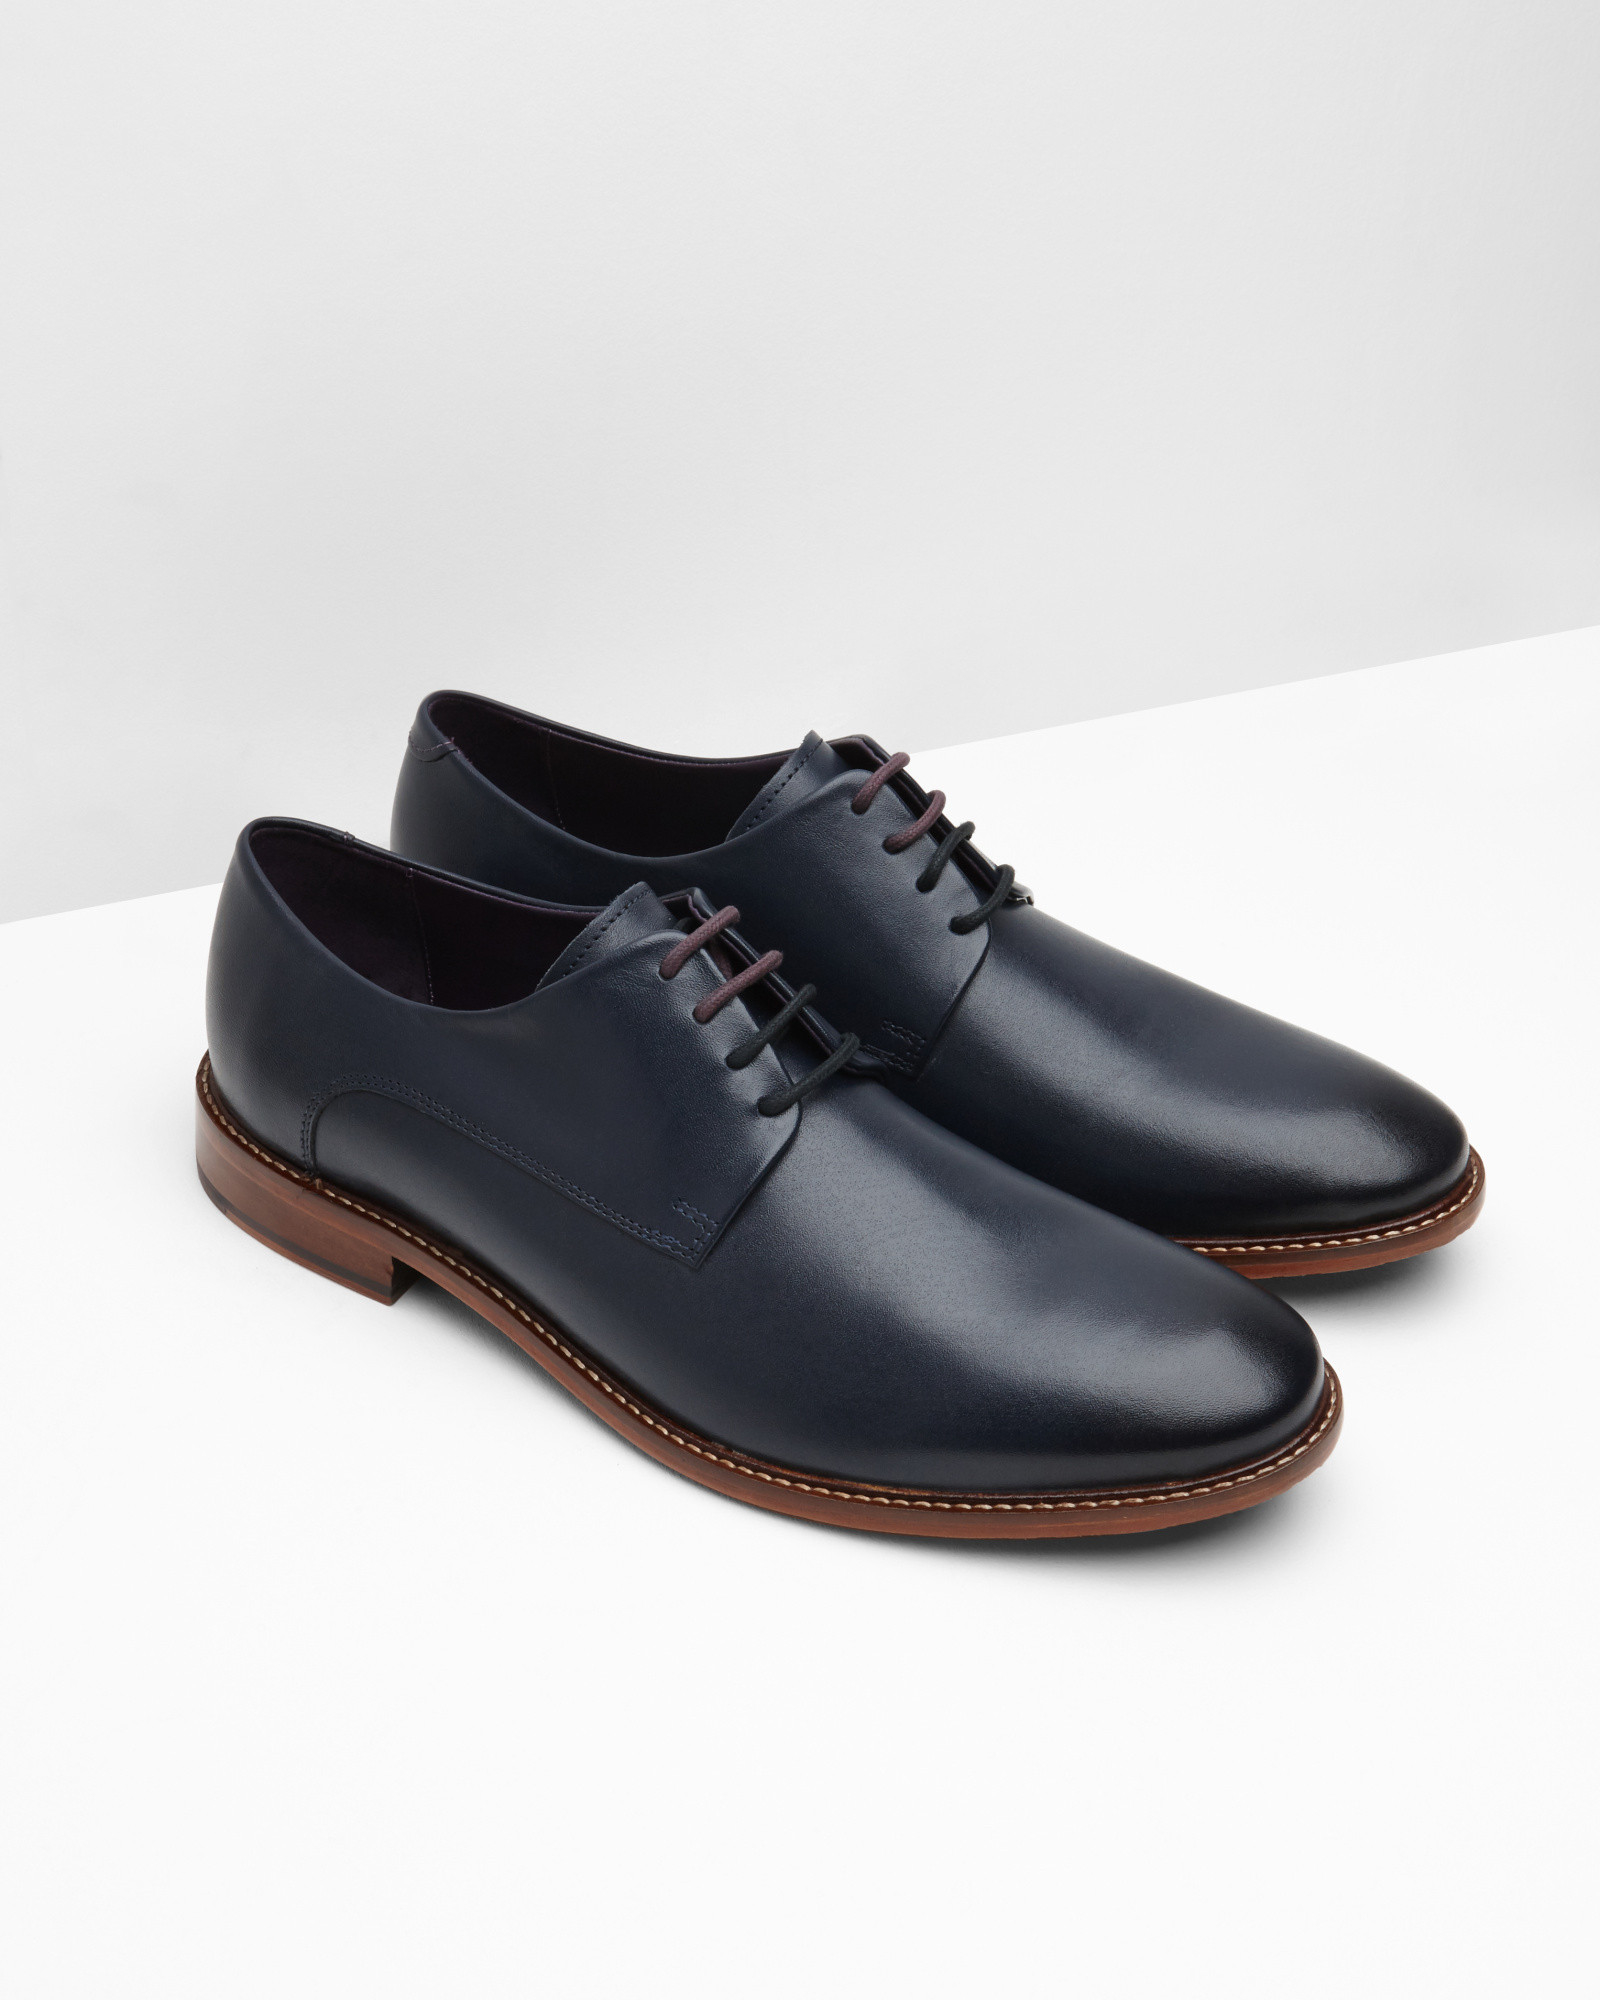 Men's Leather Derby Shoes in Black These handsome derby shoes have been made in a Northhampton-based factory that is respected for their generations of expertise. The uppers are lined in a smooth supple leather that wears beautifully.